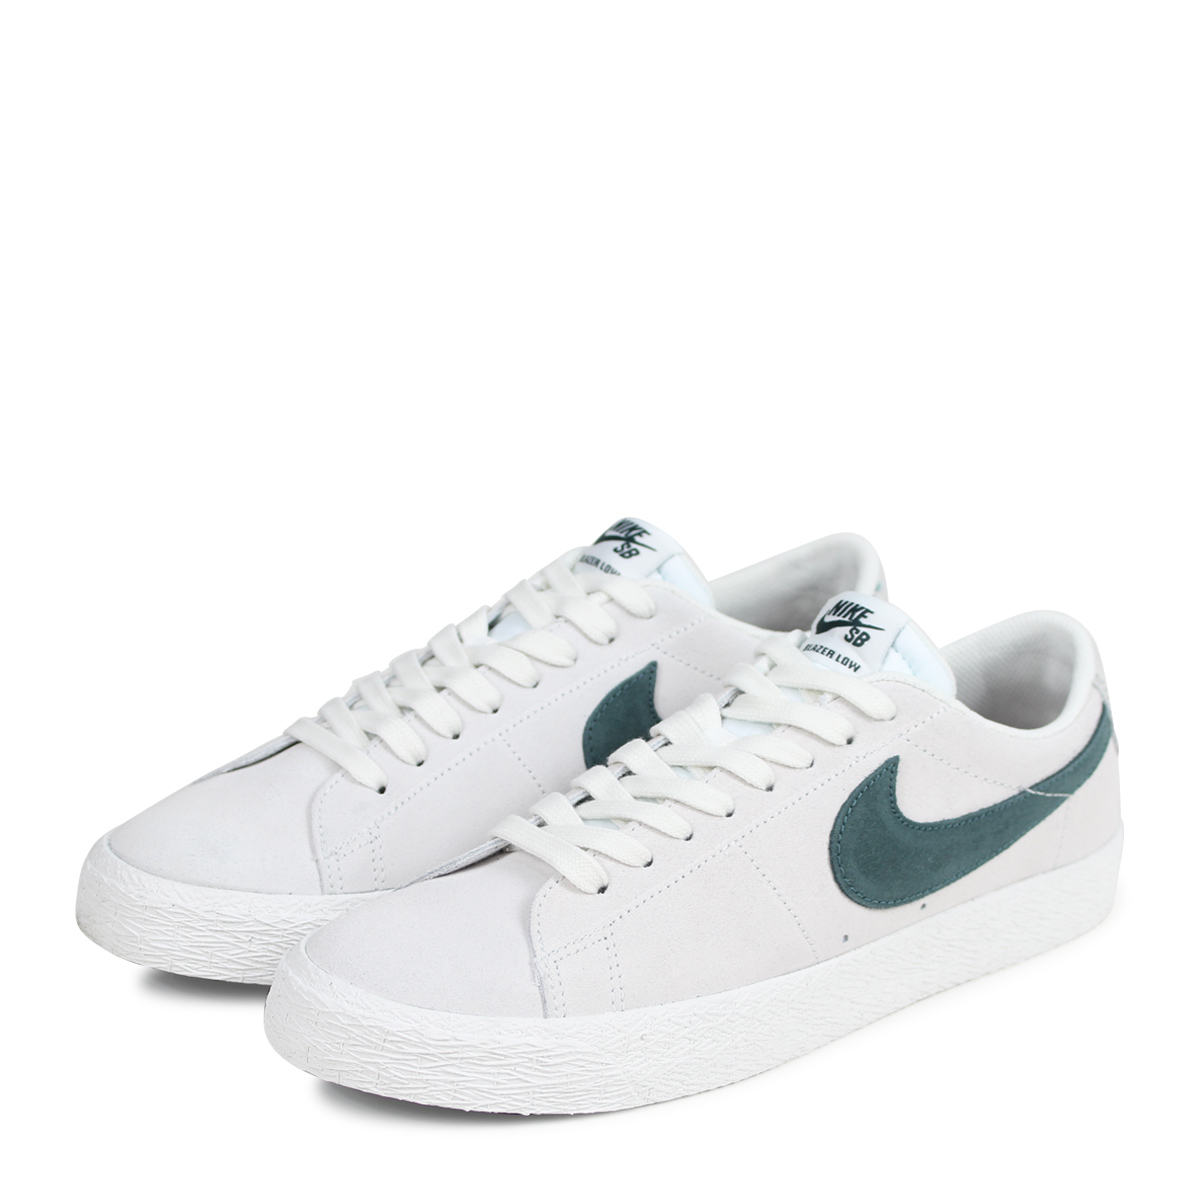 new arrival 3c36f 88fc4 NIKE BLAZER ZOOM LOW Nike SB blazer low sneakers men 864,347-101 off-white  ...